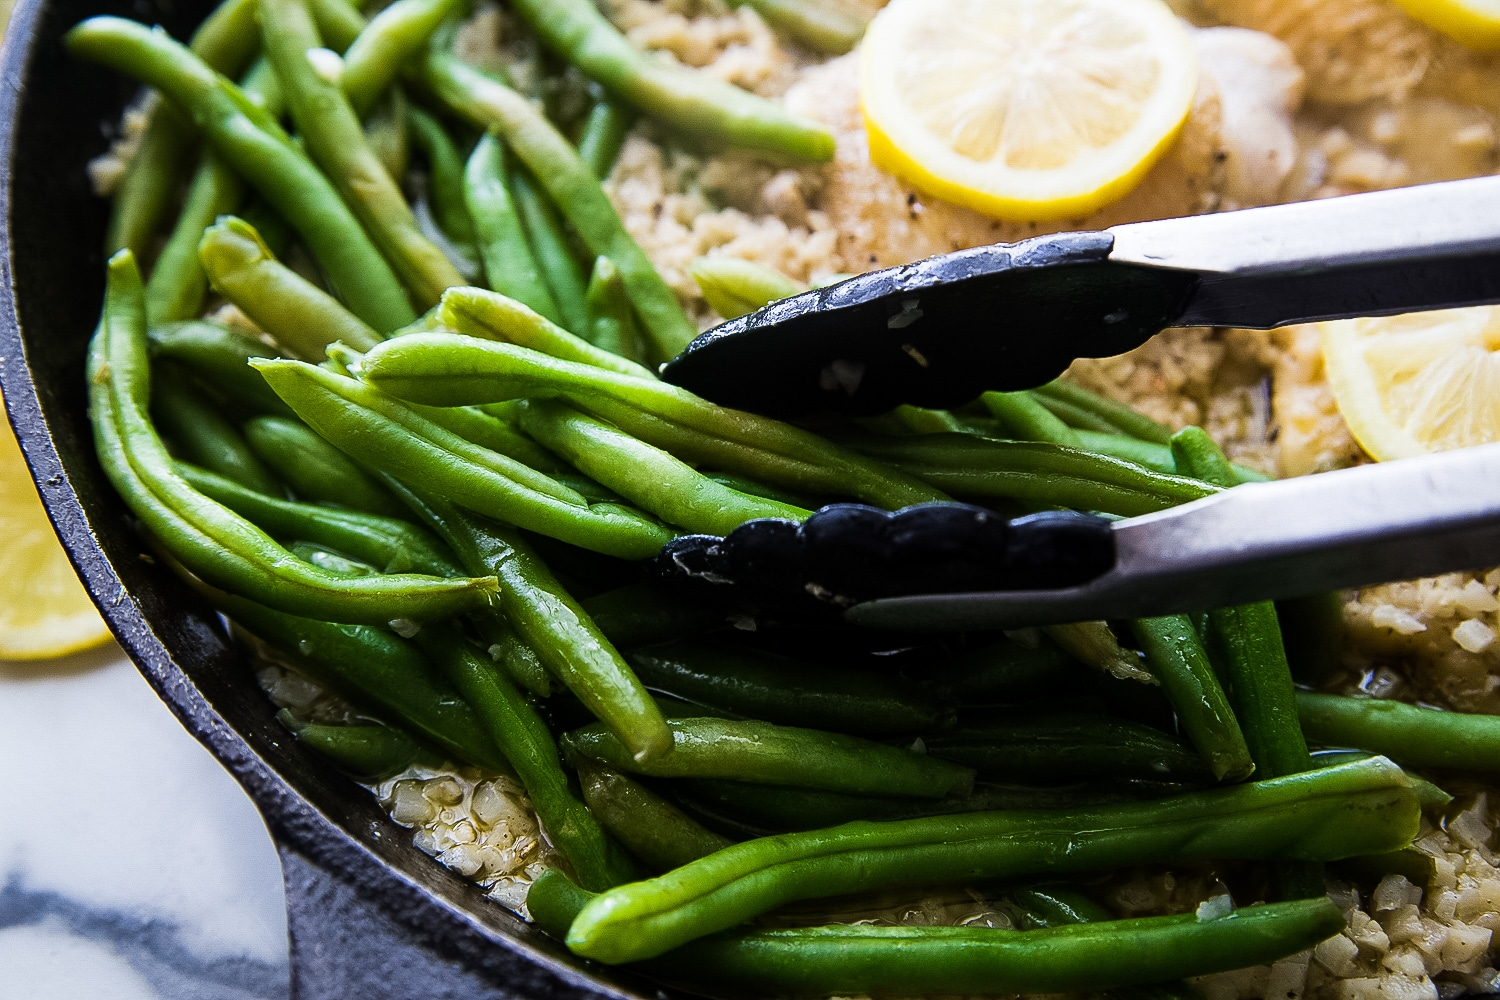 Steamed green beans being added to the riced cauliflower and chicken skillet.